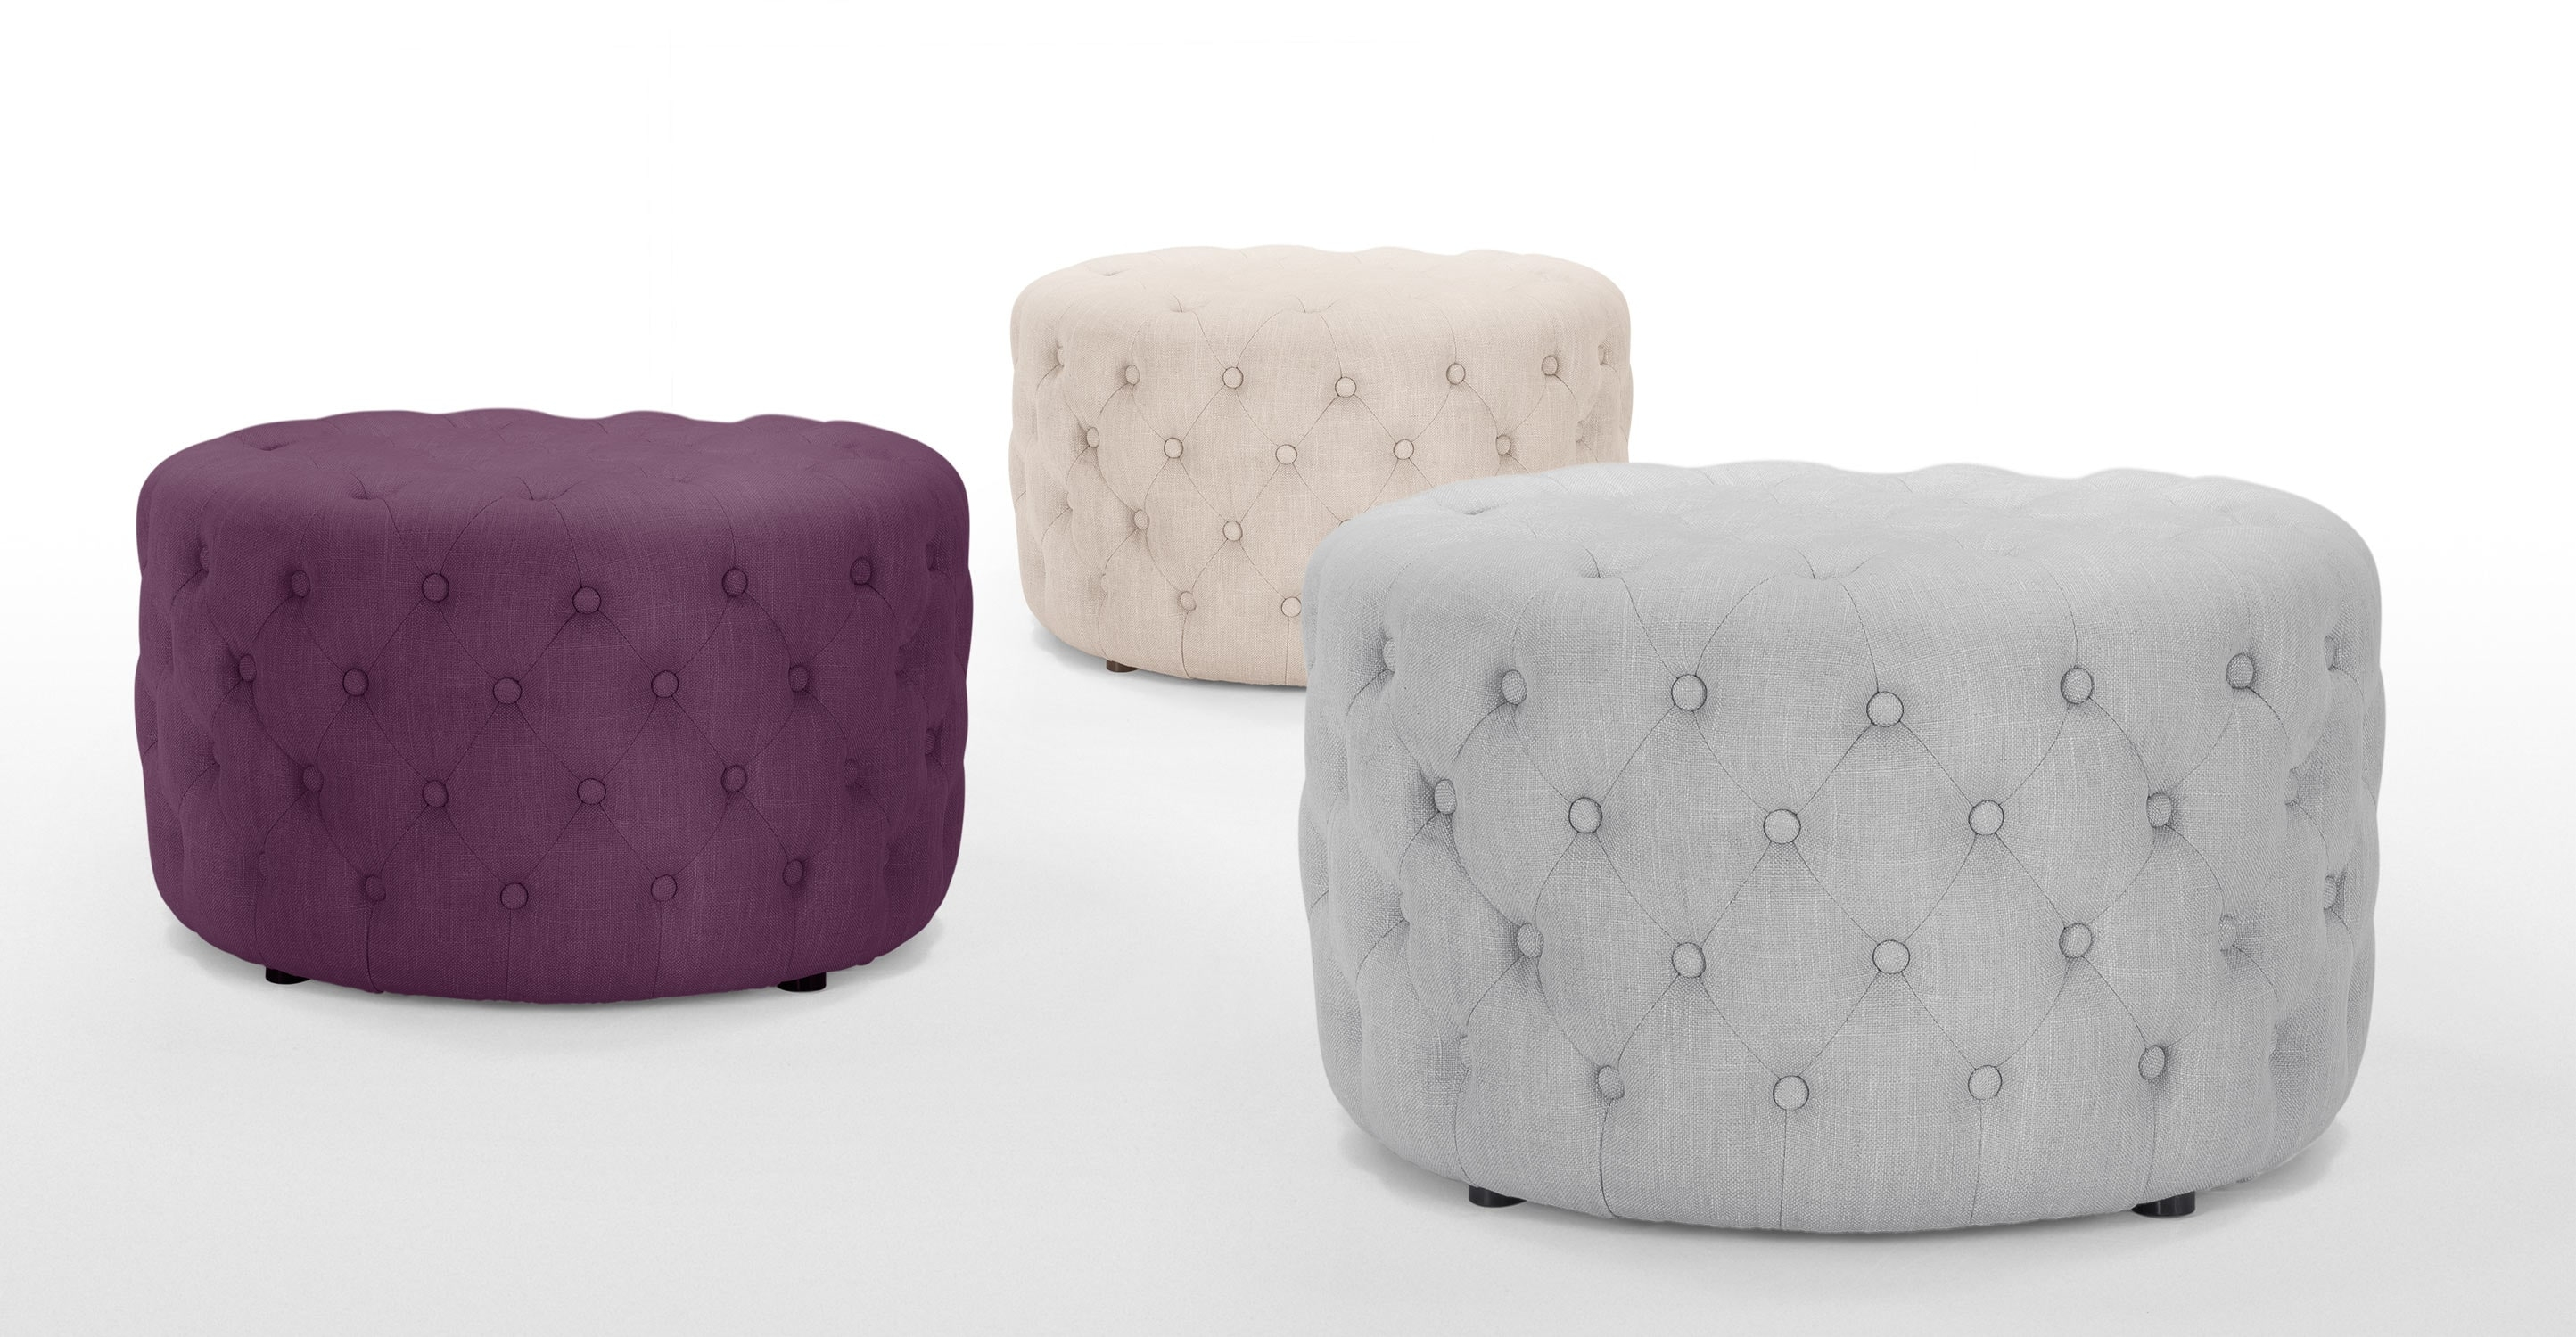 Blakes Small Round Purple Ottoman Made Intended For Small Footstools And Pouffes (View 6 of 15)